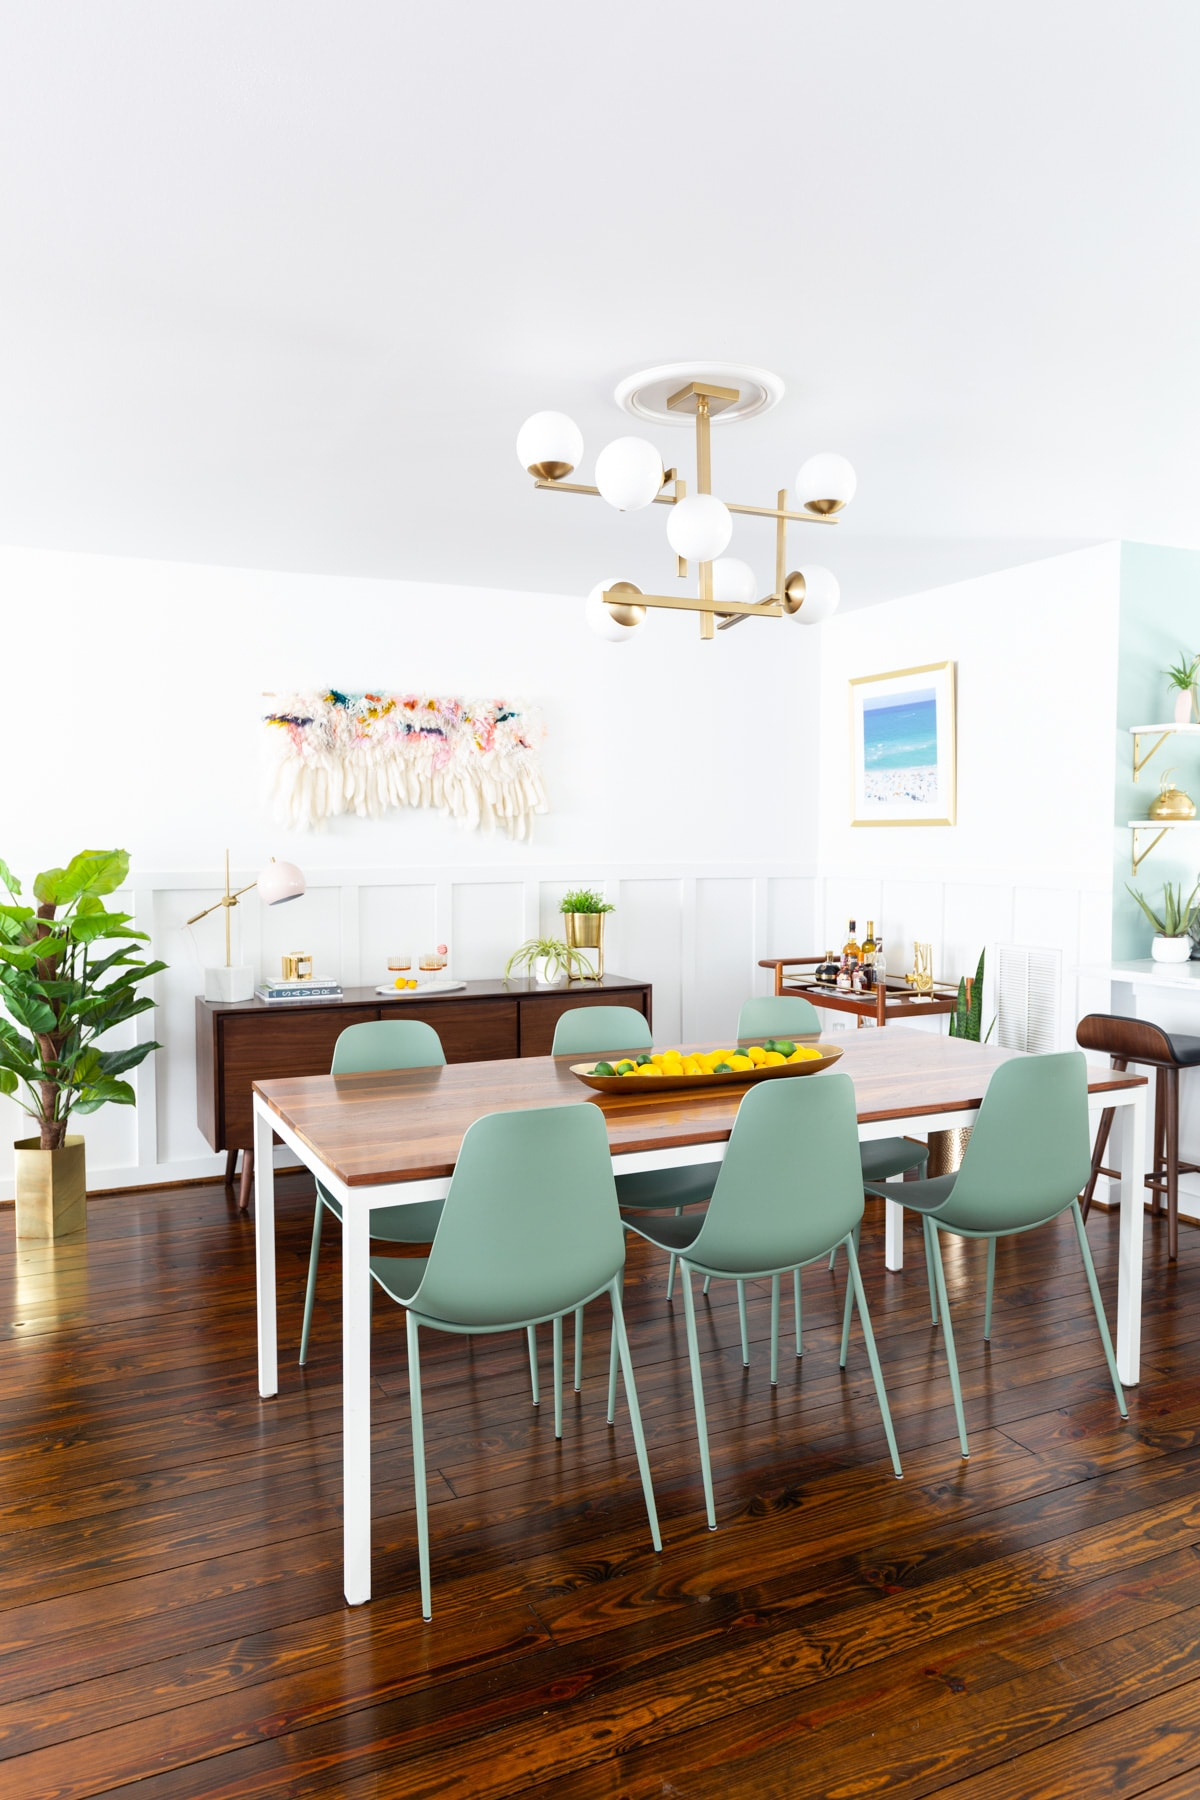 Sugar & Cloth Casa: Our Dining Room Makeover Reveal!